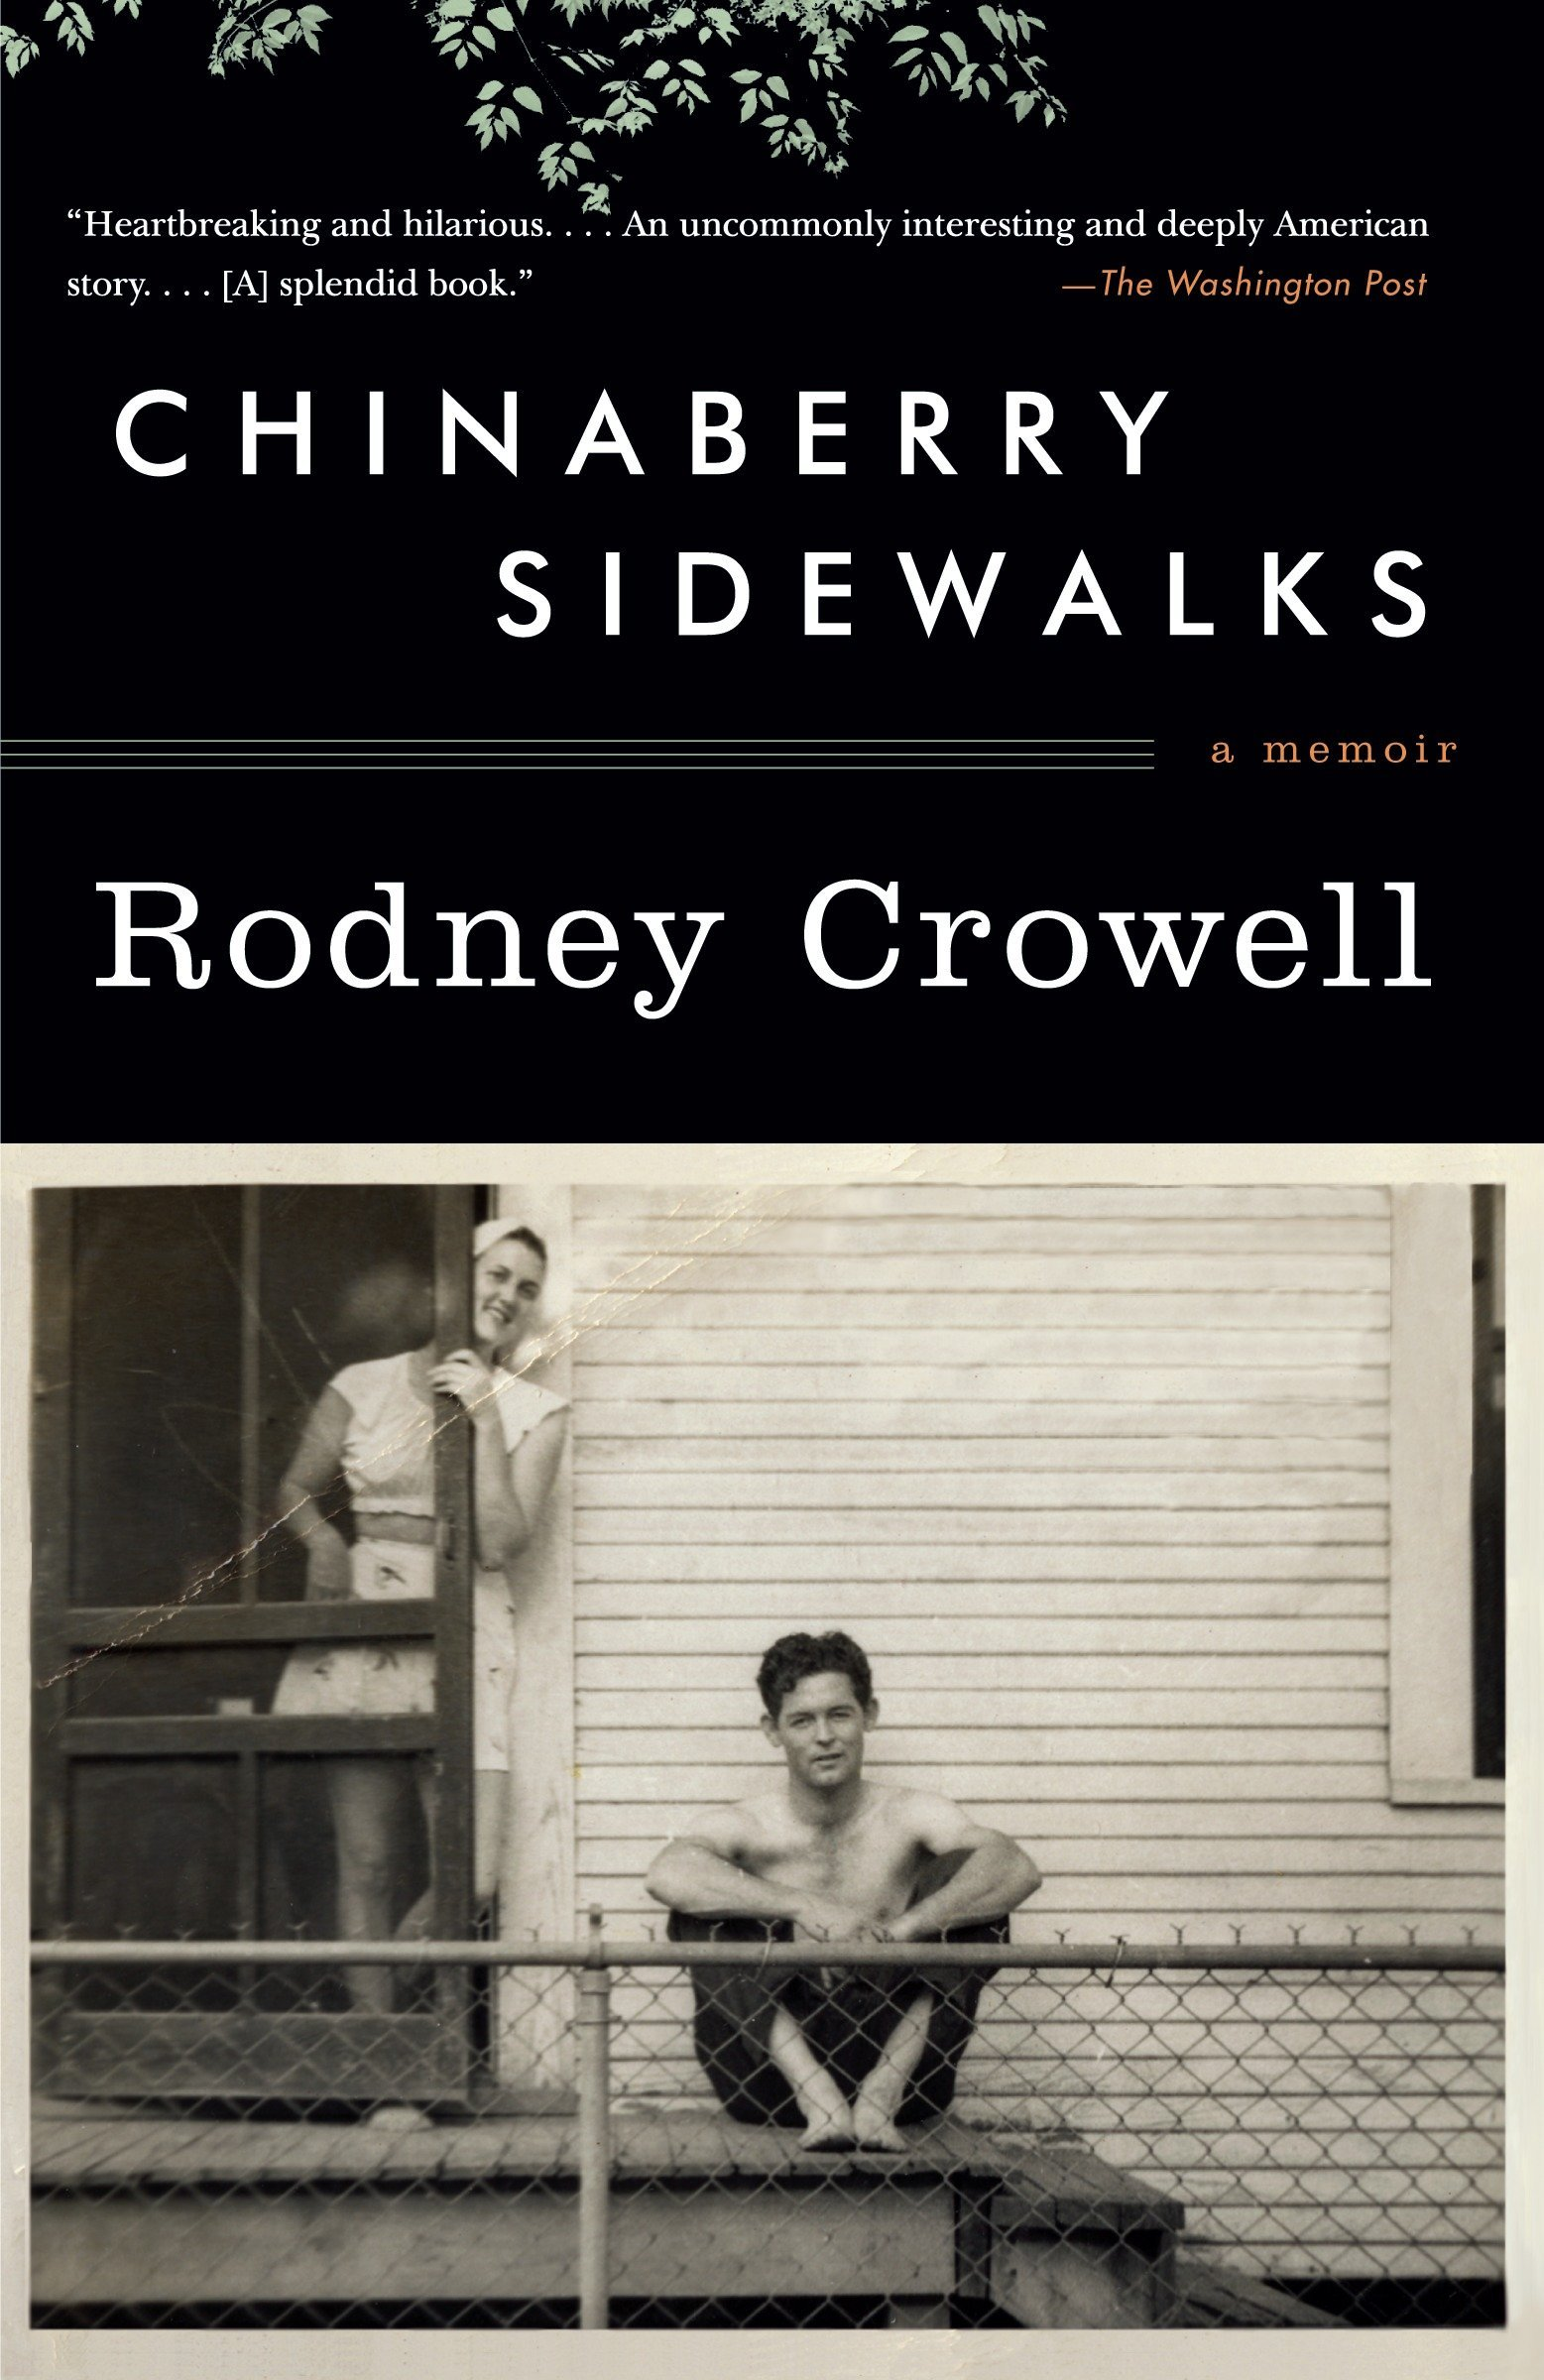 Amazon fr - Chinaberry Sidewalks: A Memoir - Rodney Crowell